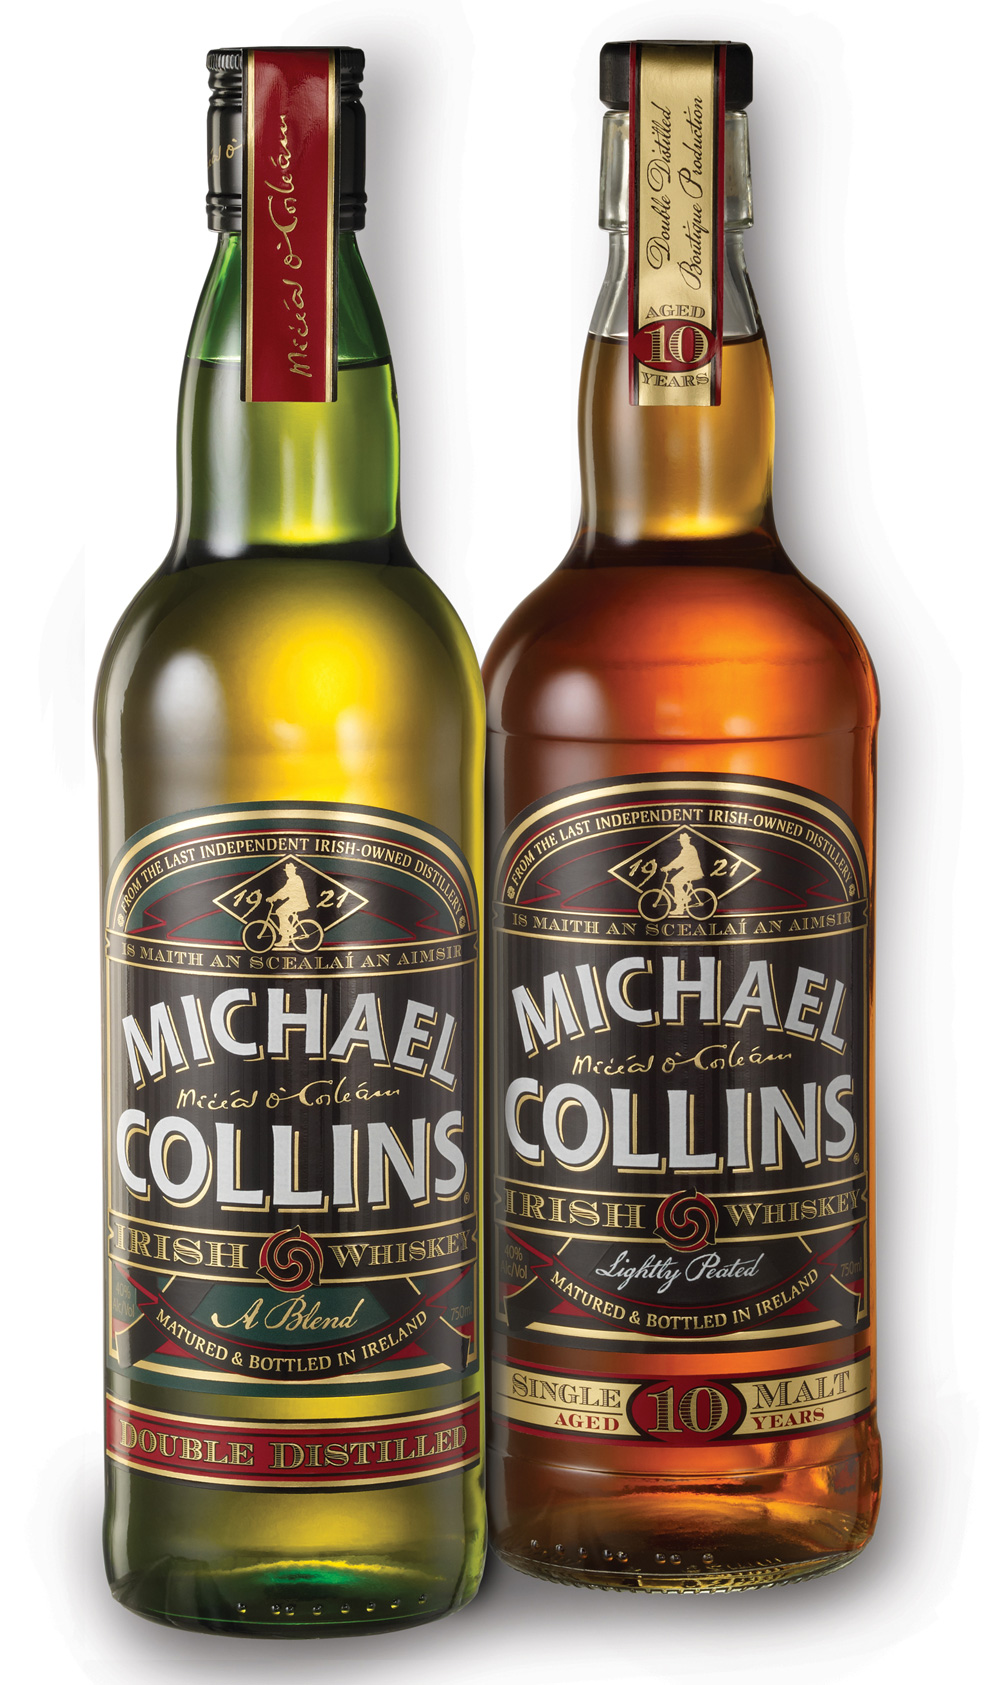 Michael Collins Launched 10 Years Old Single Malt Irish Whiskey